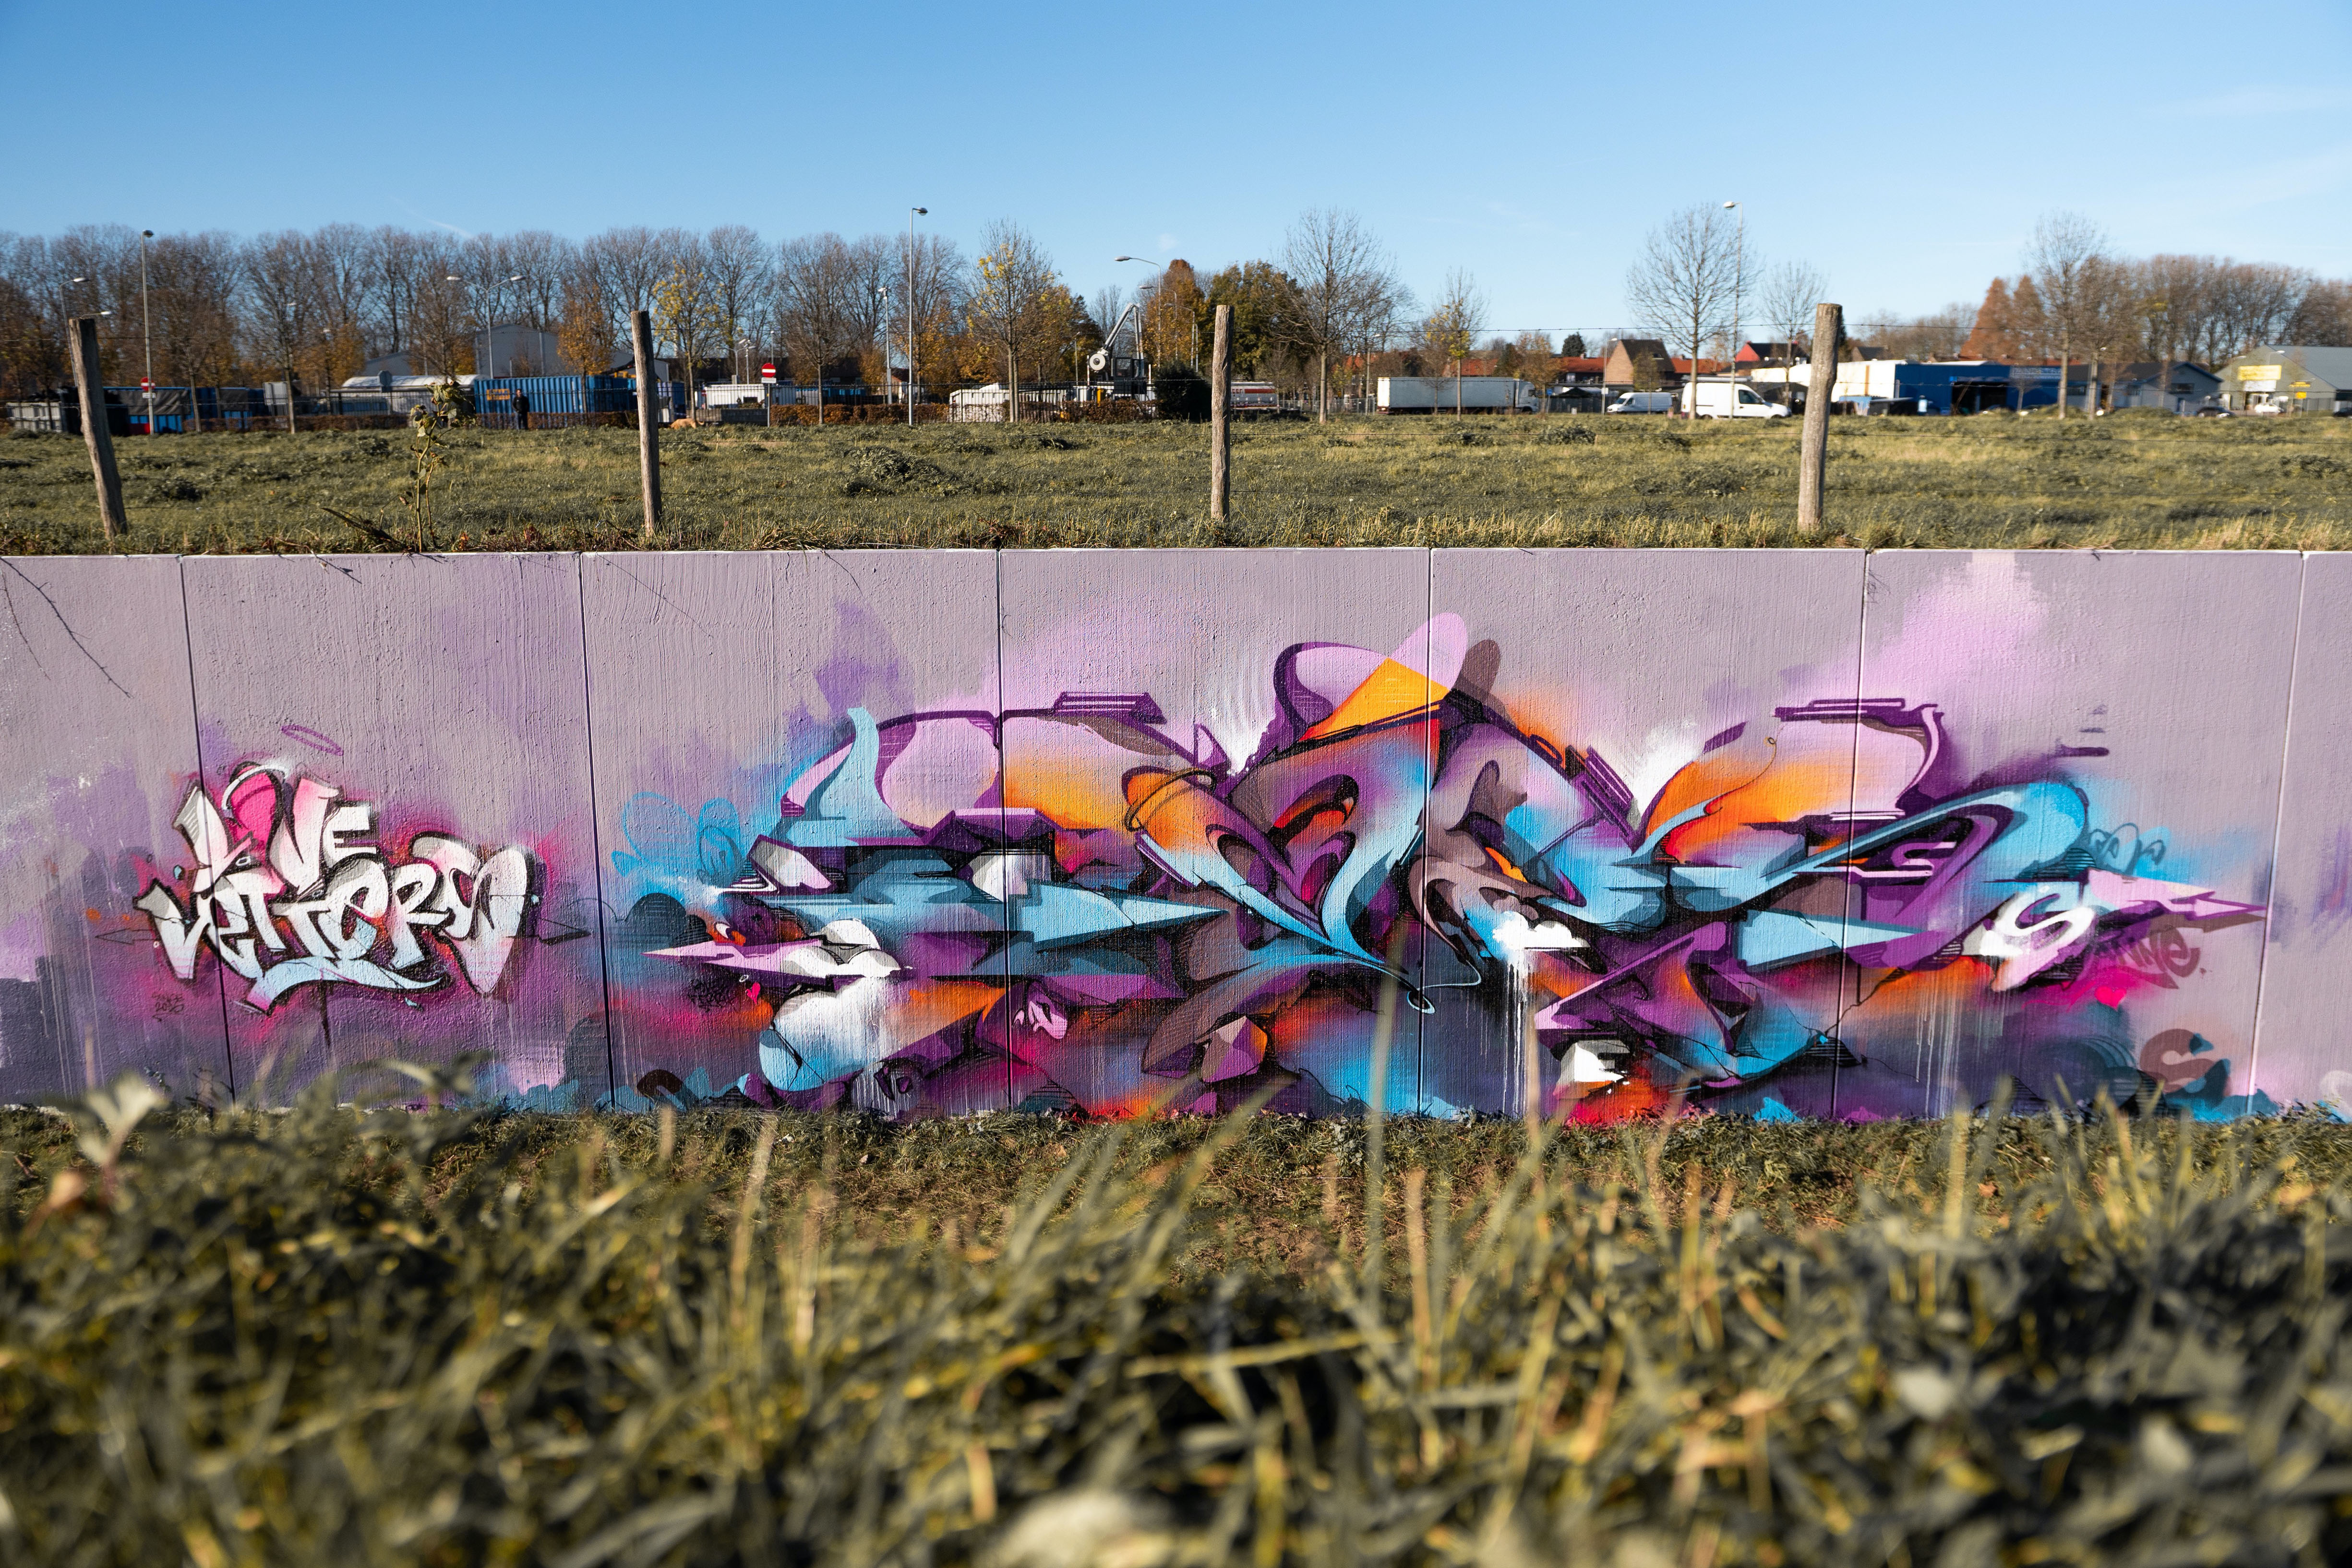 A work by Does - 5 Geleen